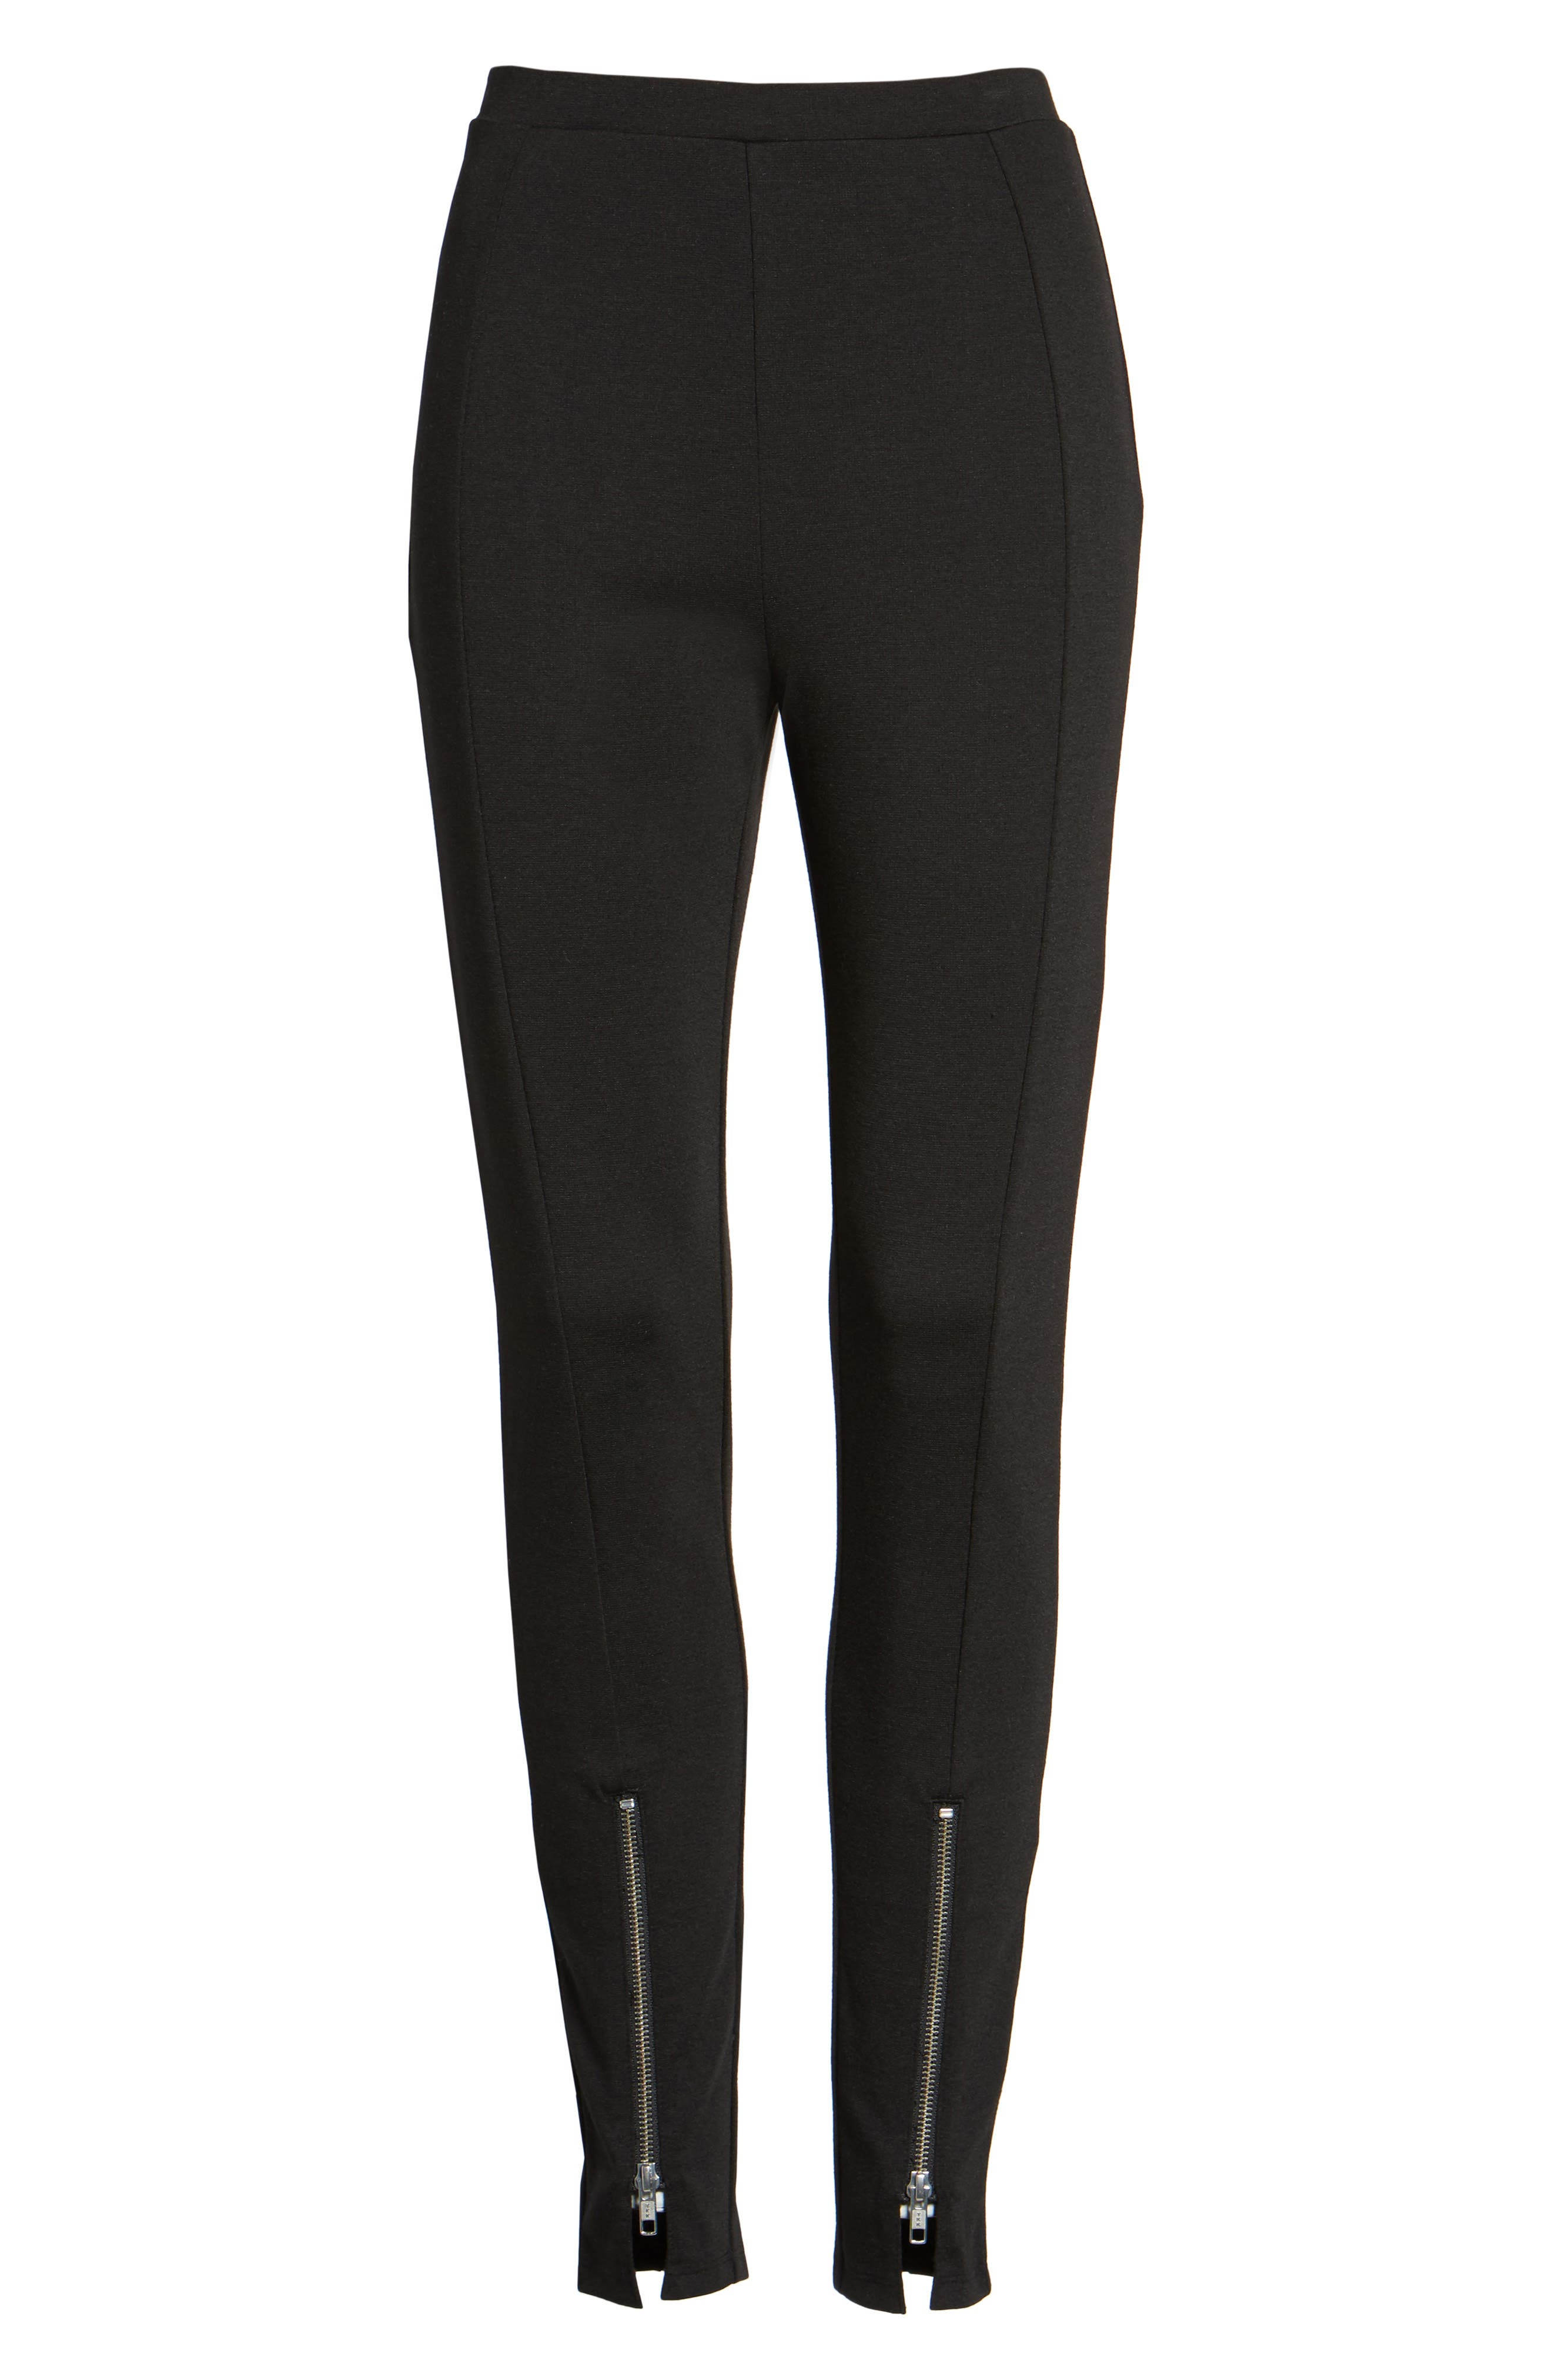 High-Waist Ankle Zip Leggings,                             Alternate thumbnail 6, color,                             Black